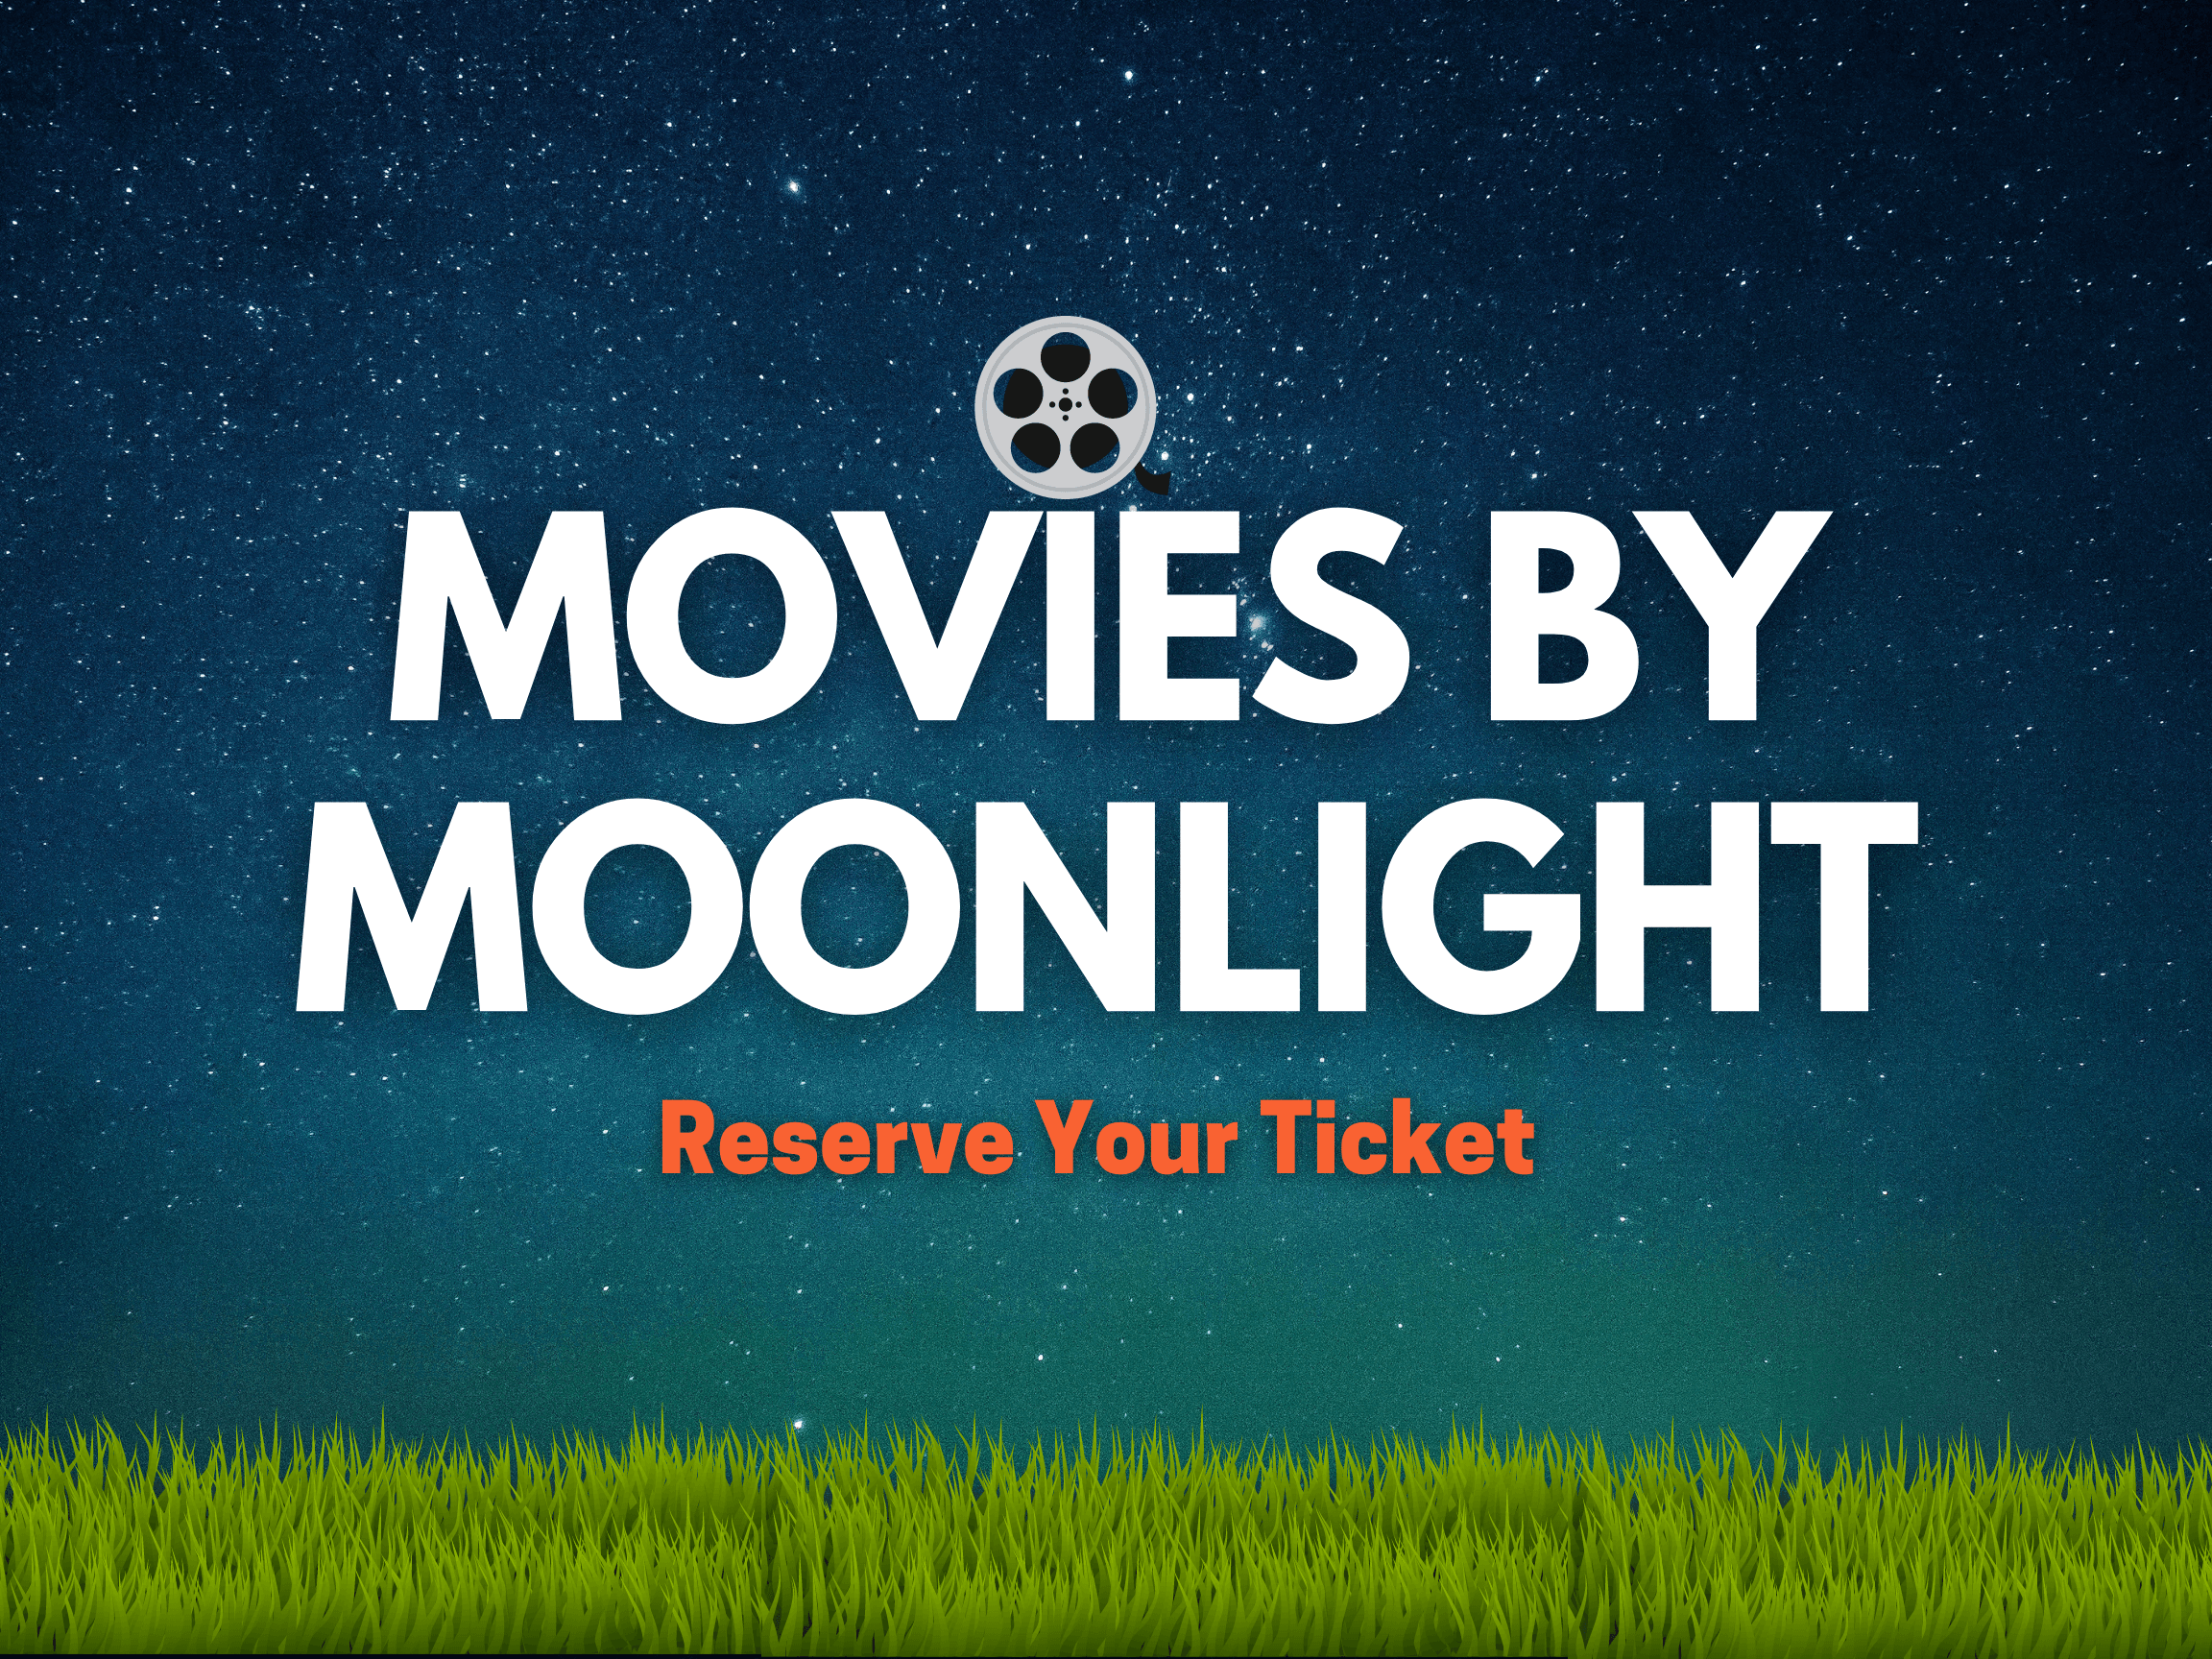 movies by moonlight - grass and stars - reserve your ticket